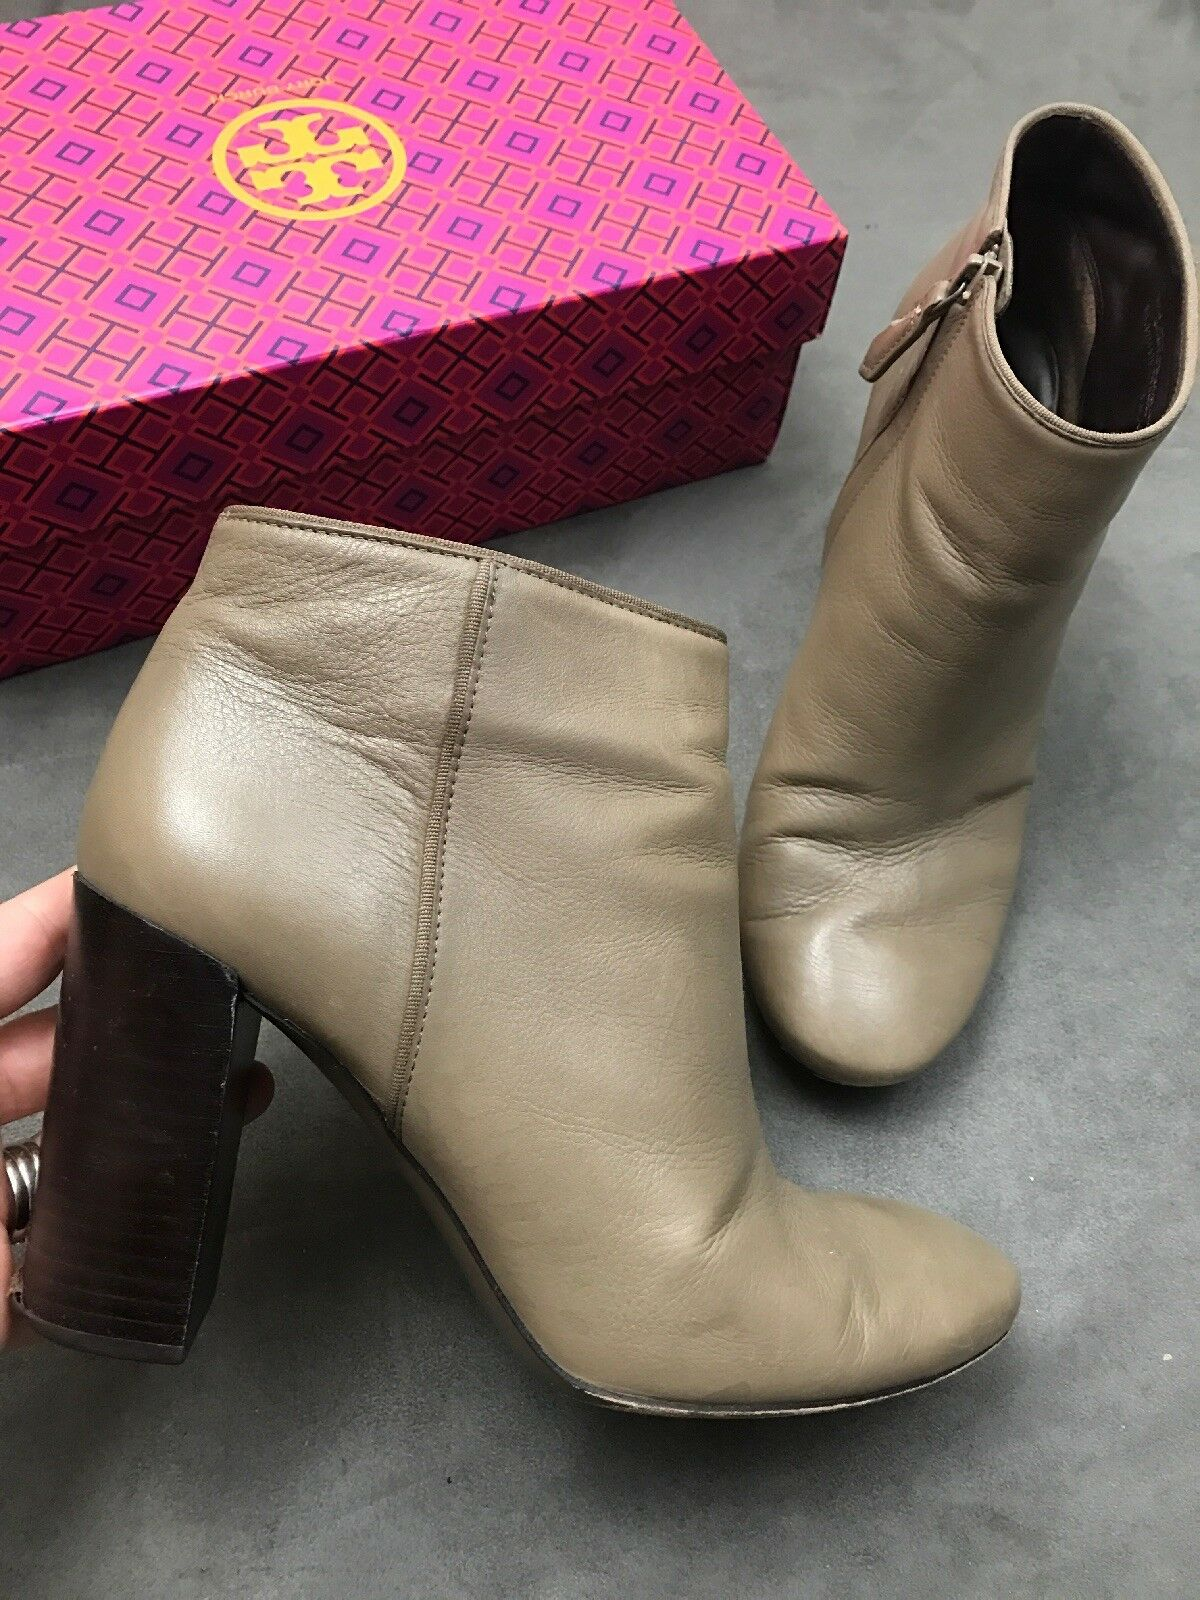 TORY BURCH Bowie Ankle Bootie Slip On Taupe Fango Leather Sabe Boots Sz 9.5